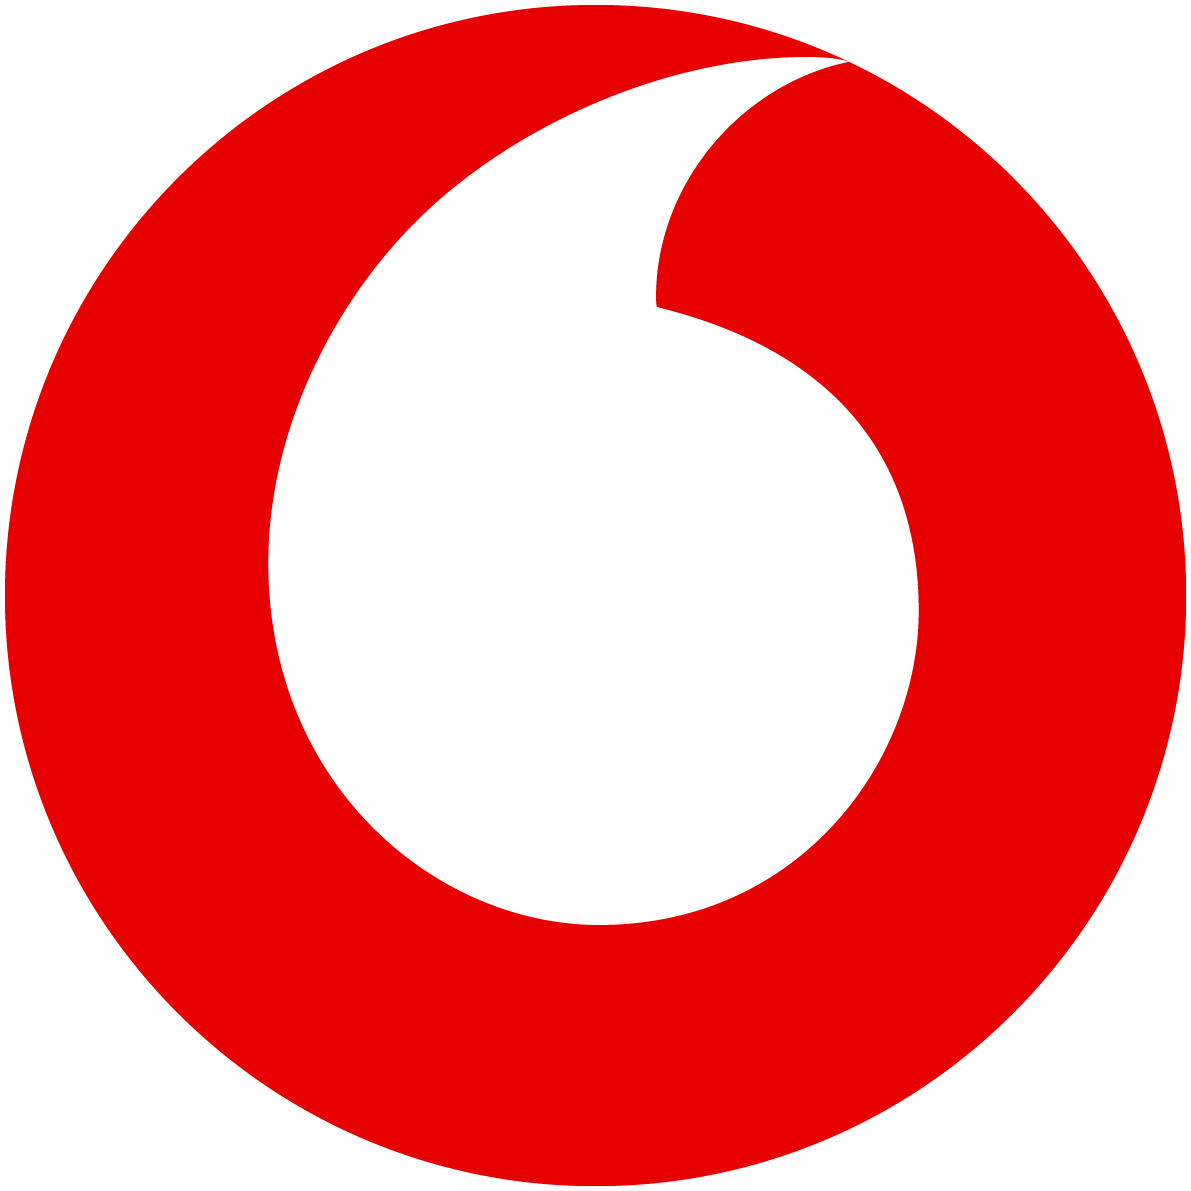 Vodafone PNG - 103846